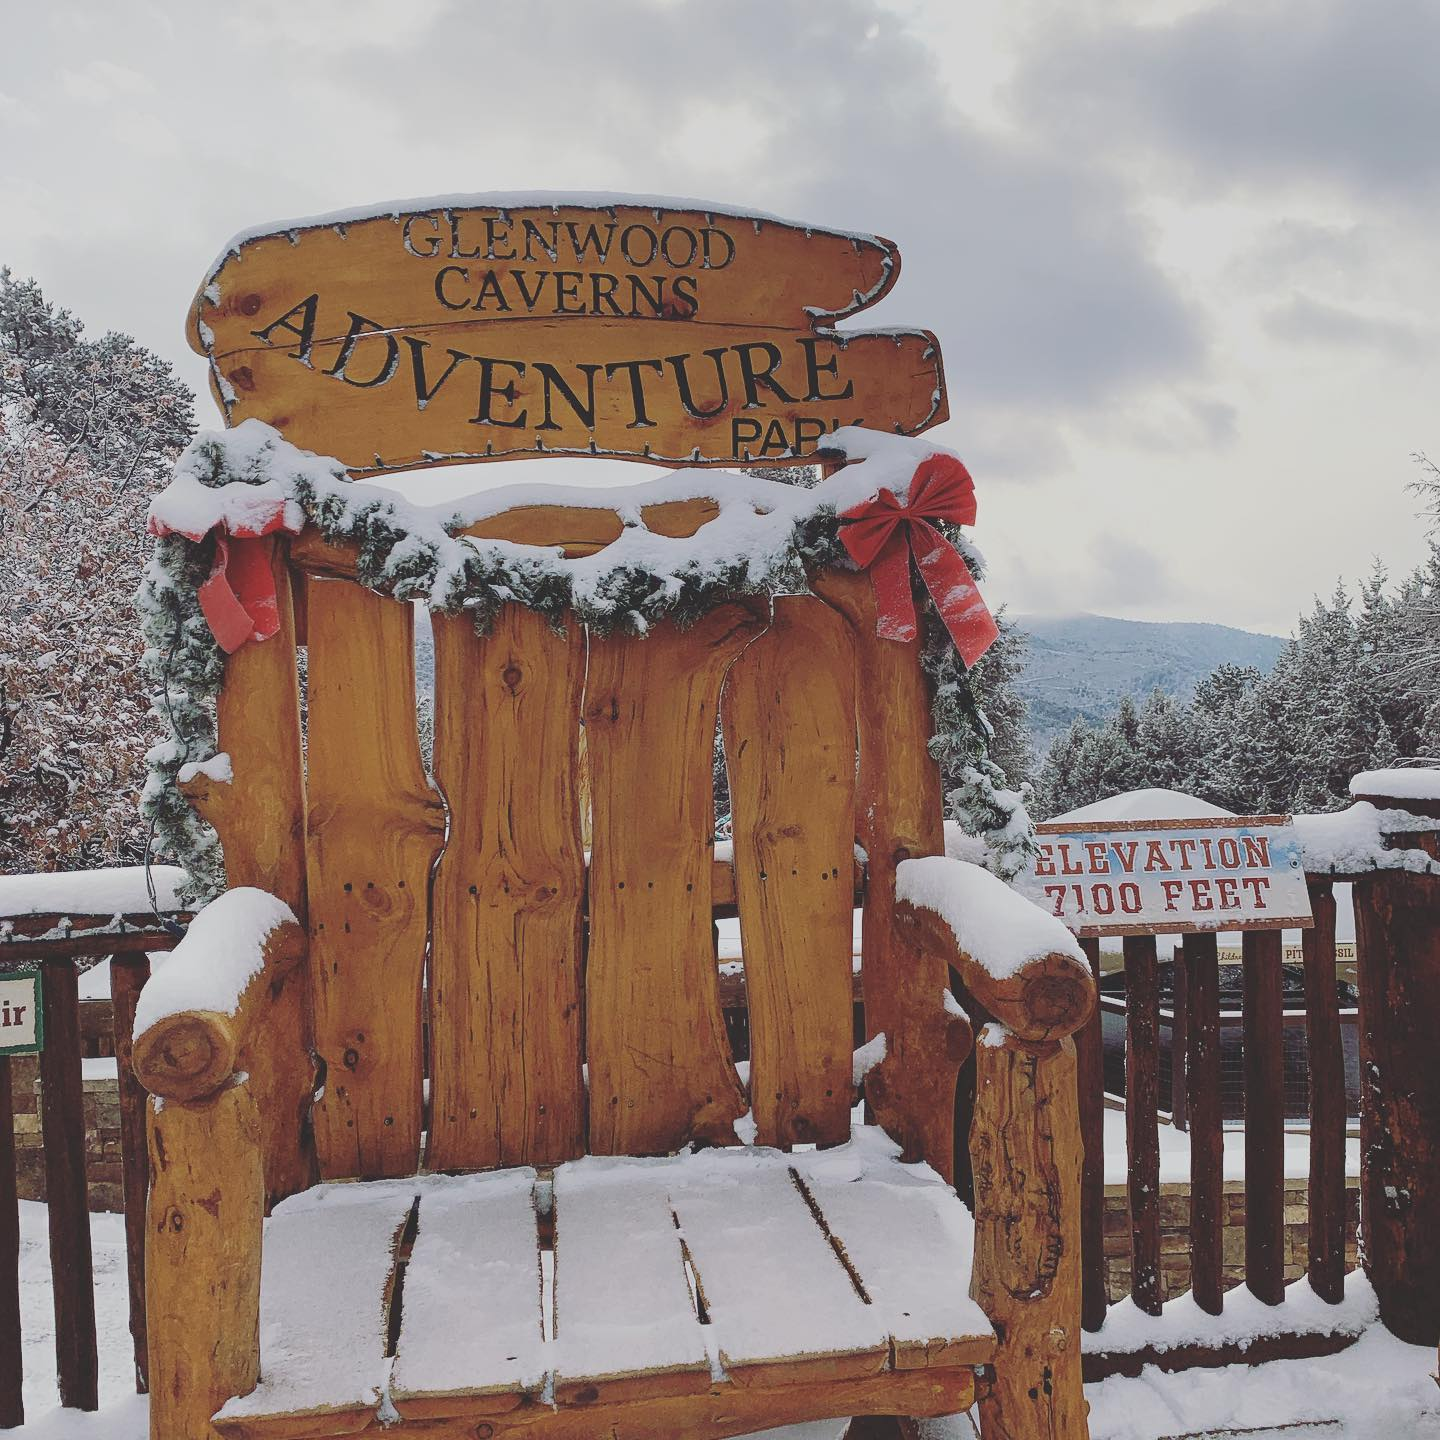 Image of a snow covered chair at Glenwood Caverns Adventure Park in Colorado